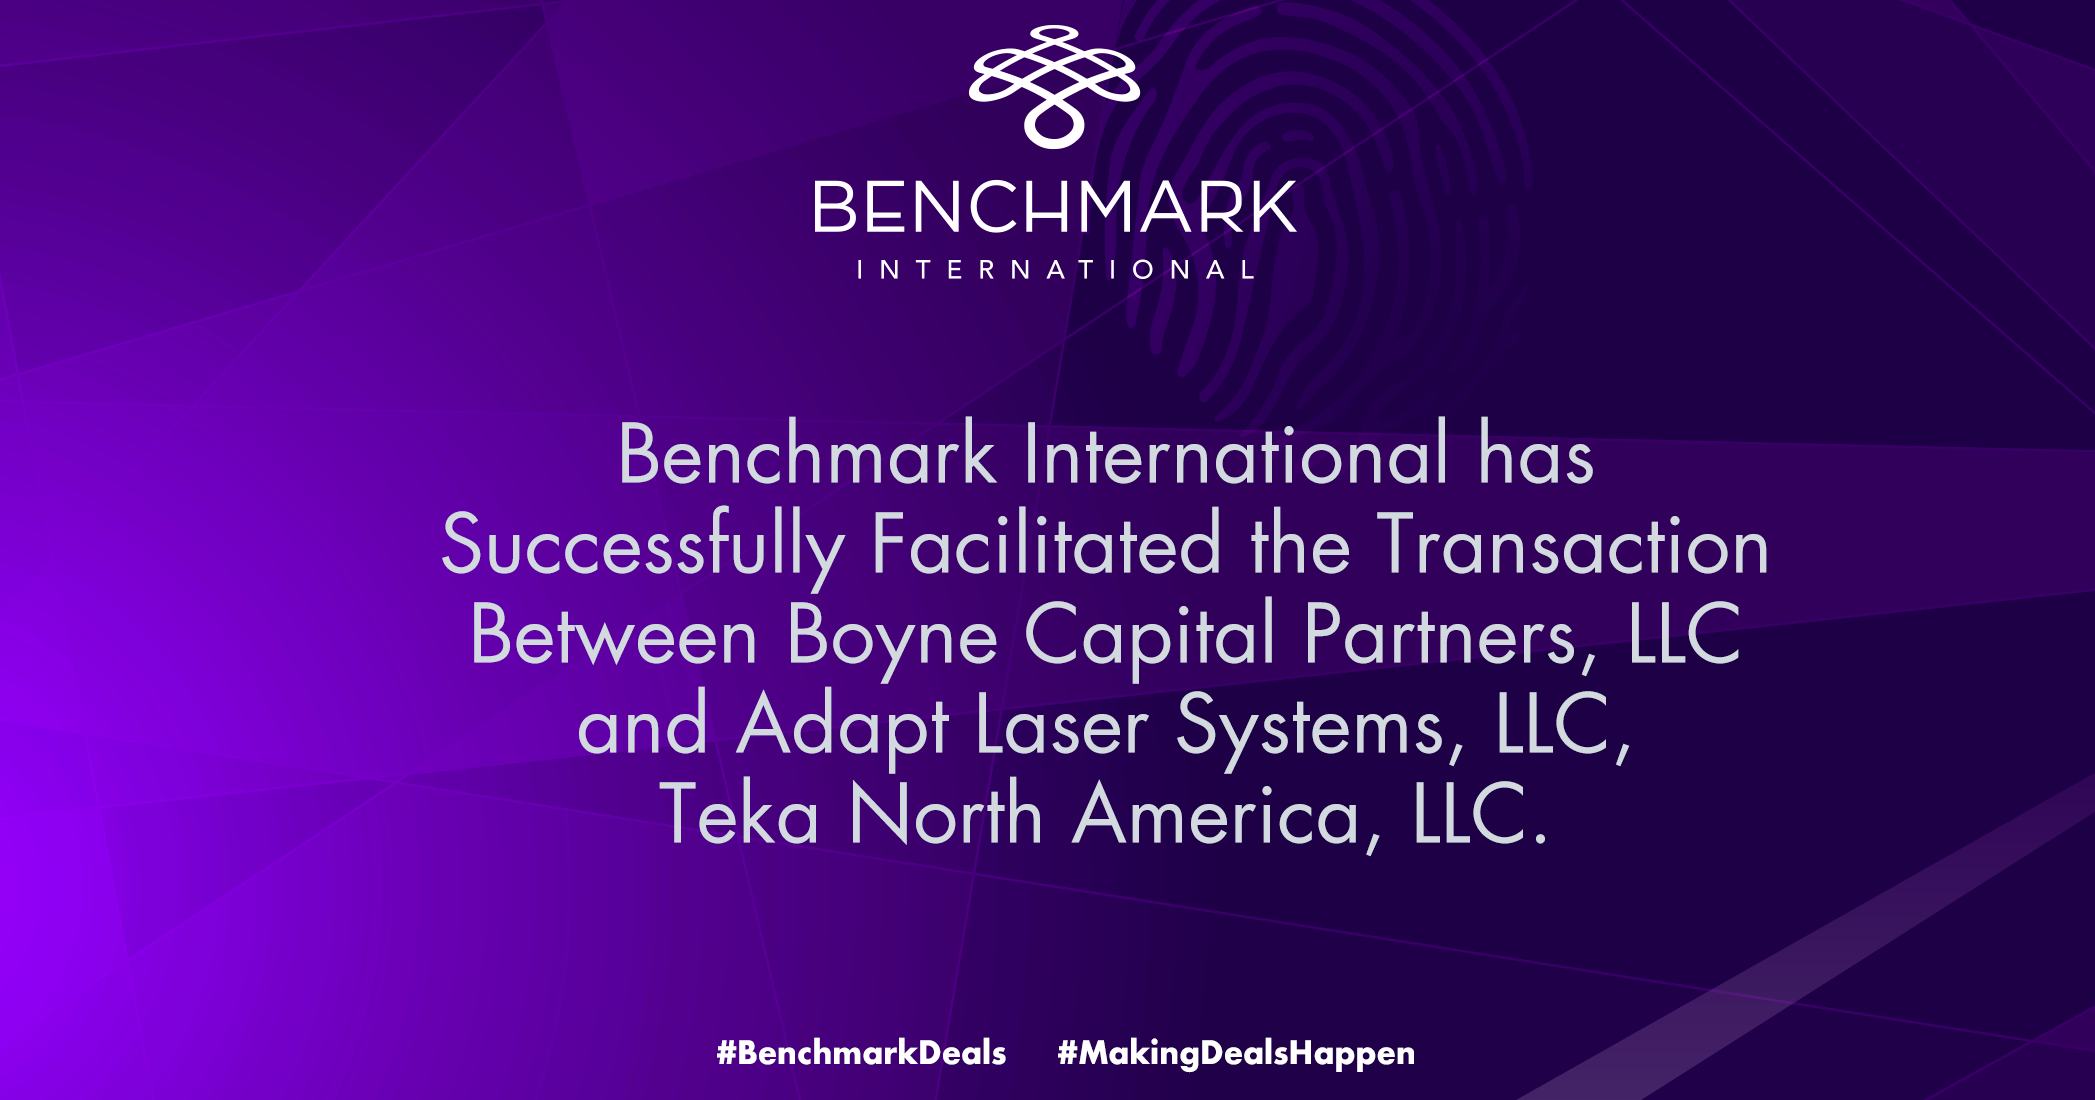 Benchmark International has successfully facilitated the sale of Adapt Laser Systems, LLC and Teka North America, LLC to Boyne Capital Partners, LLC